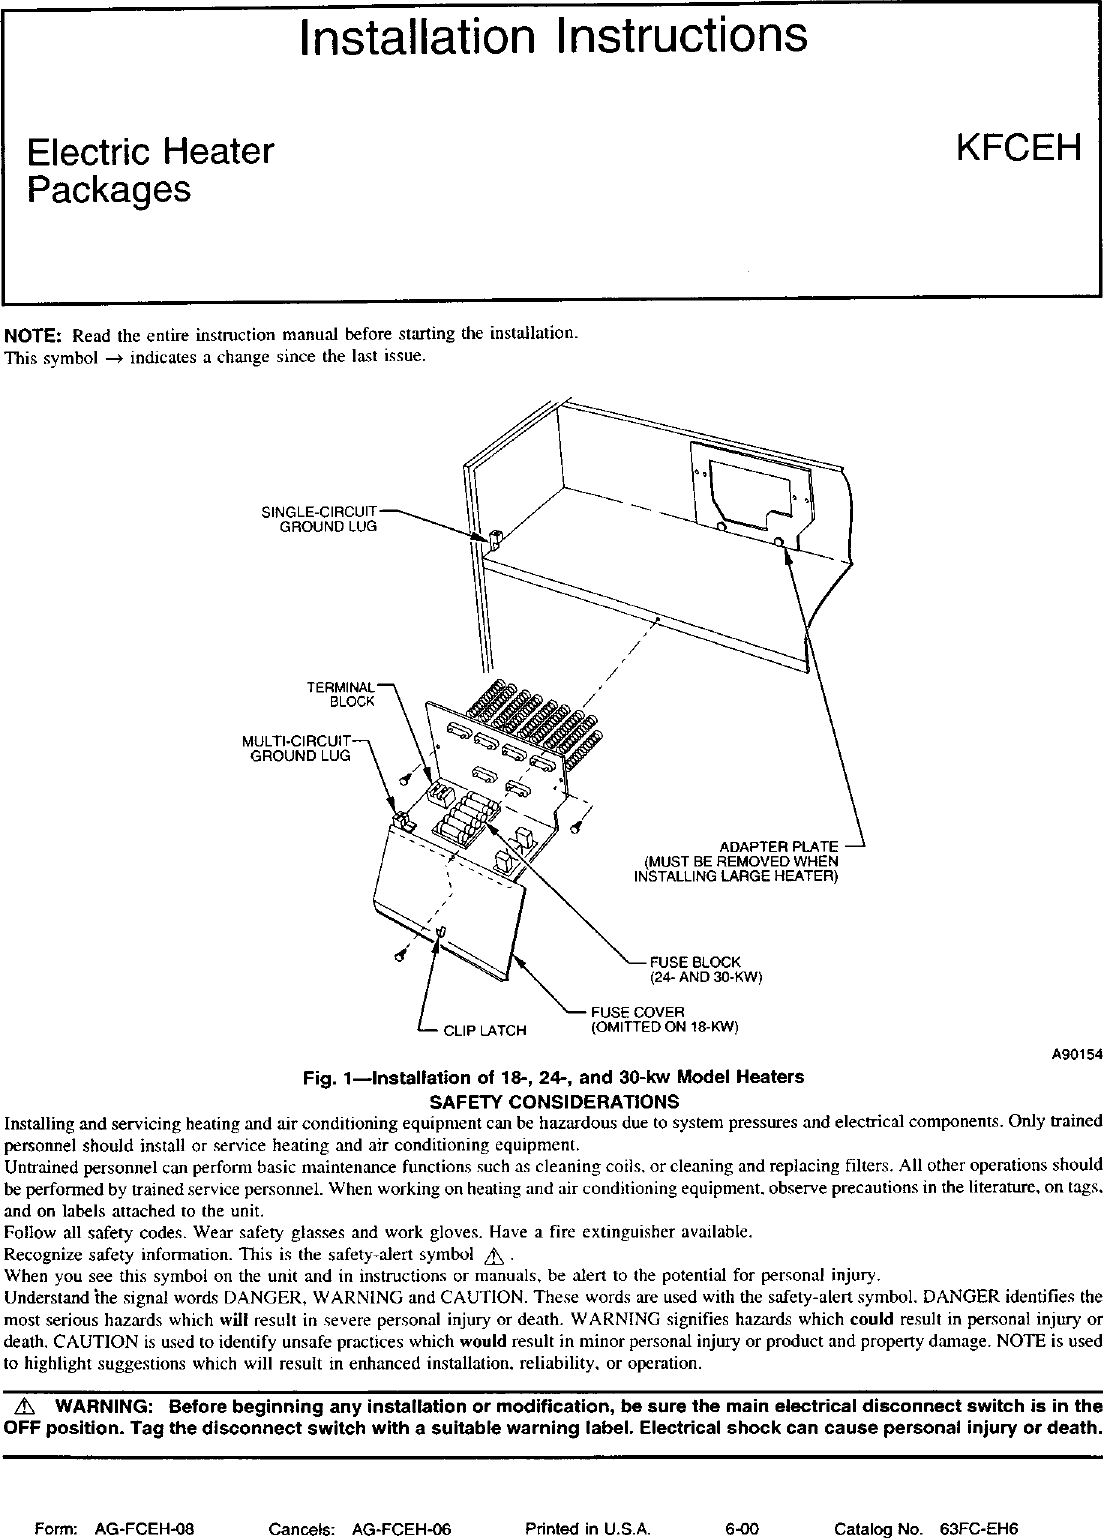 Carrier Air Handler Auxiliary Heater Kit Manual L0210329 Electric Furnace Wiring Diagrams Together With Page 1 Of 12